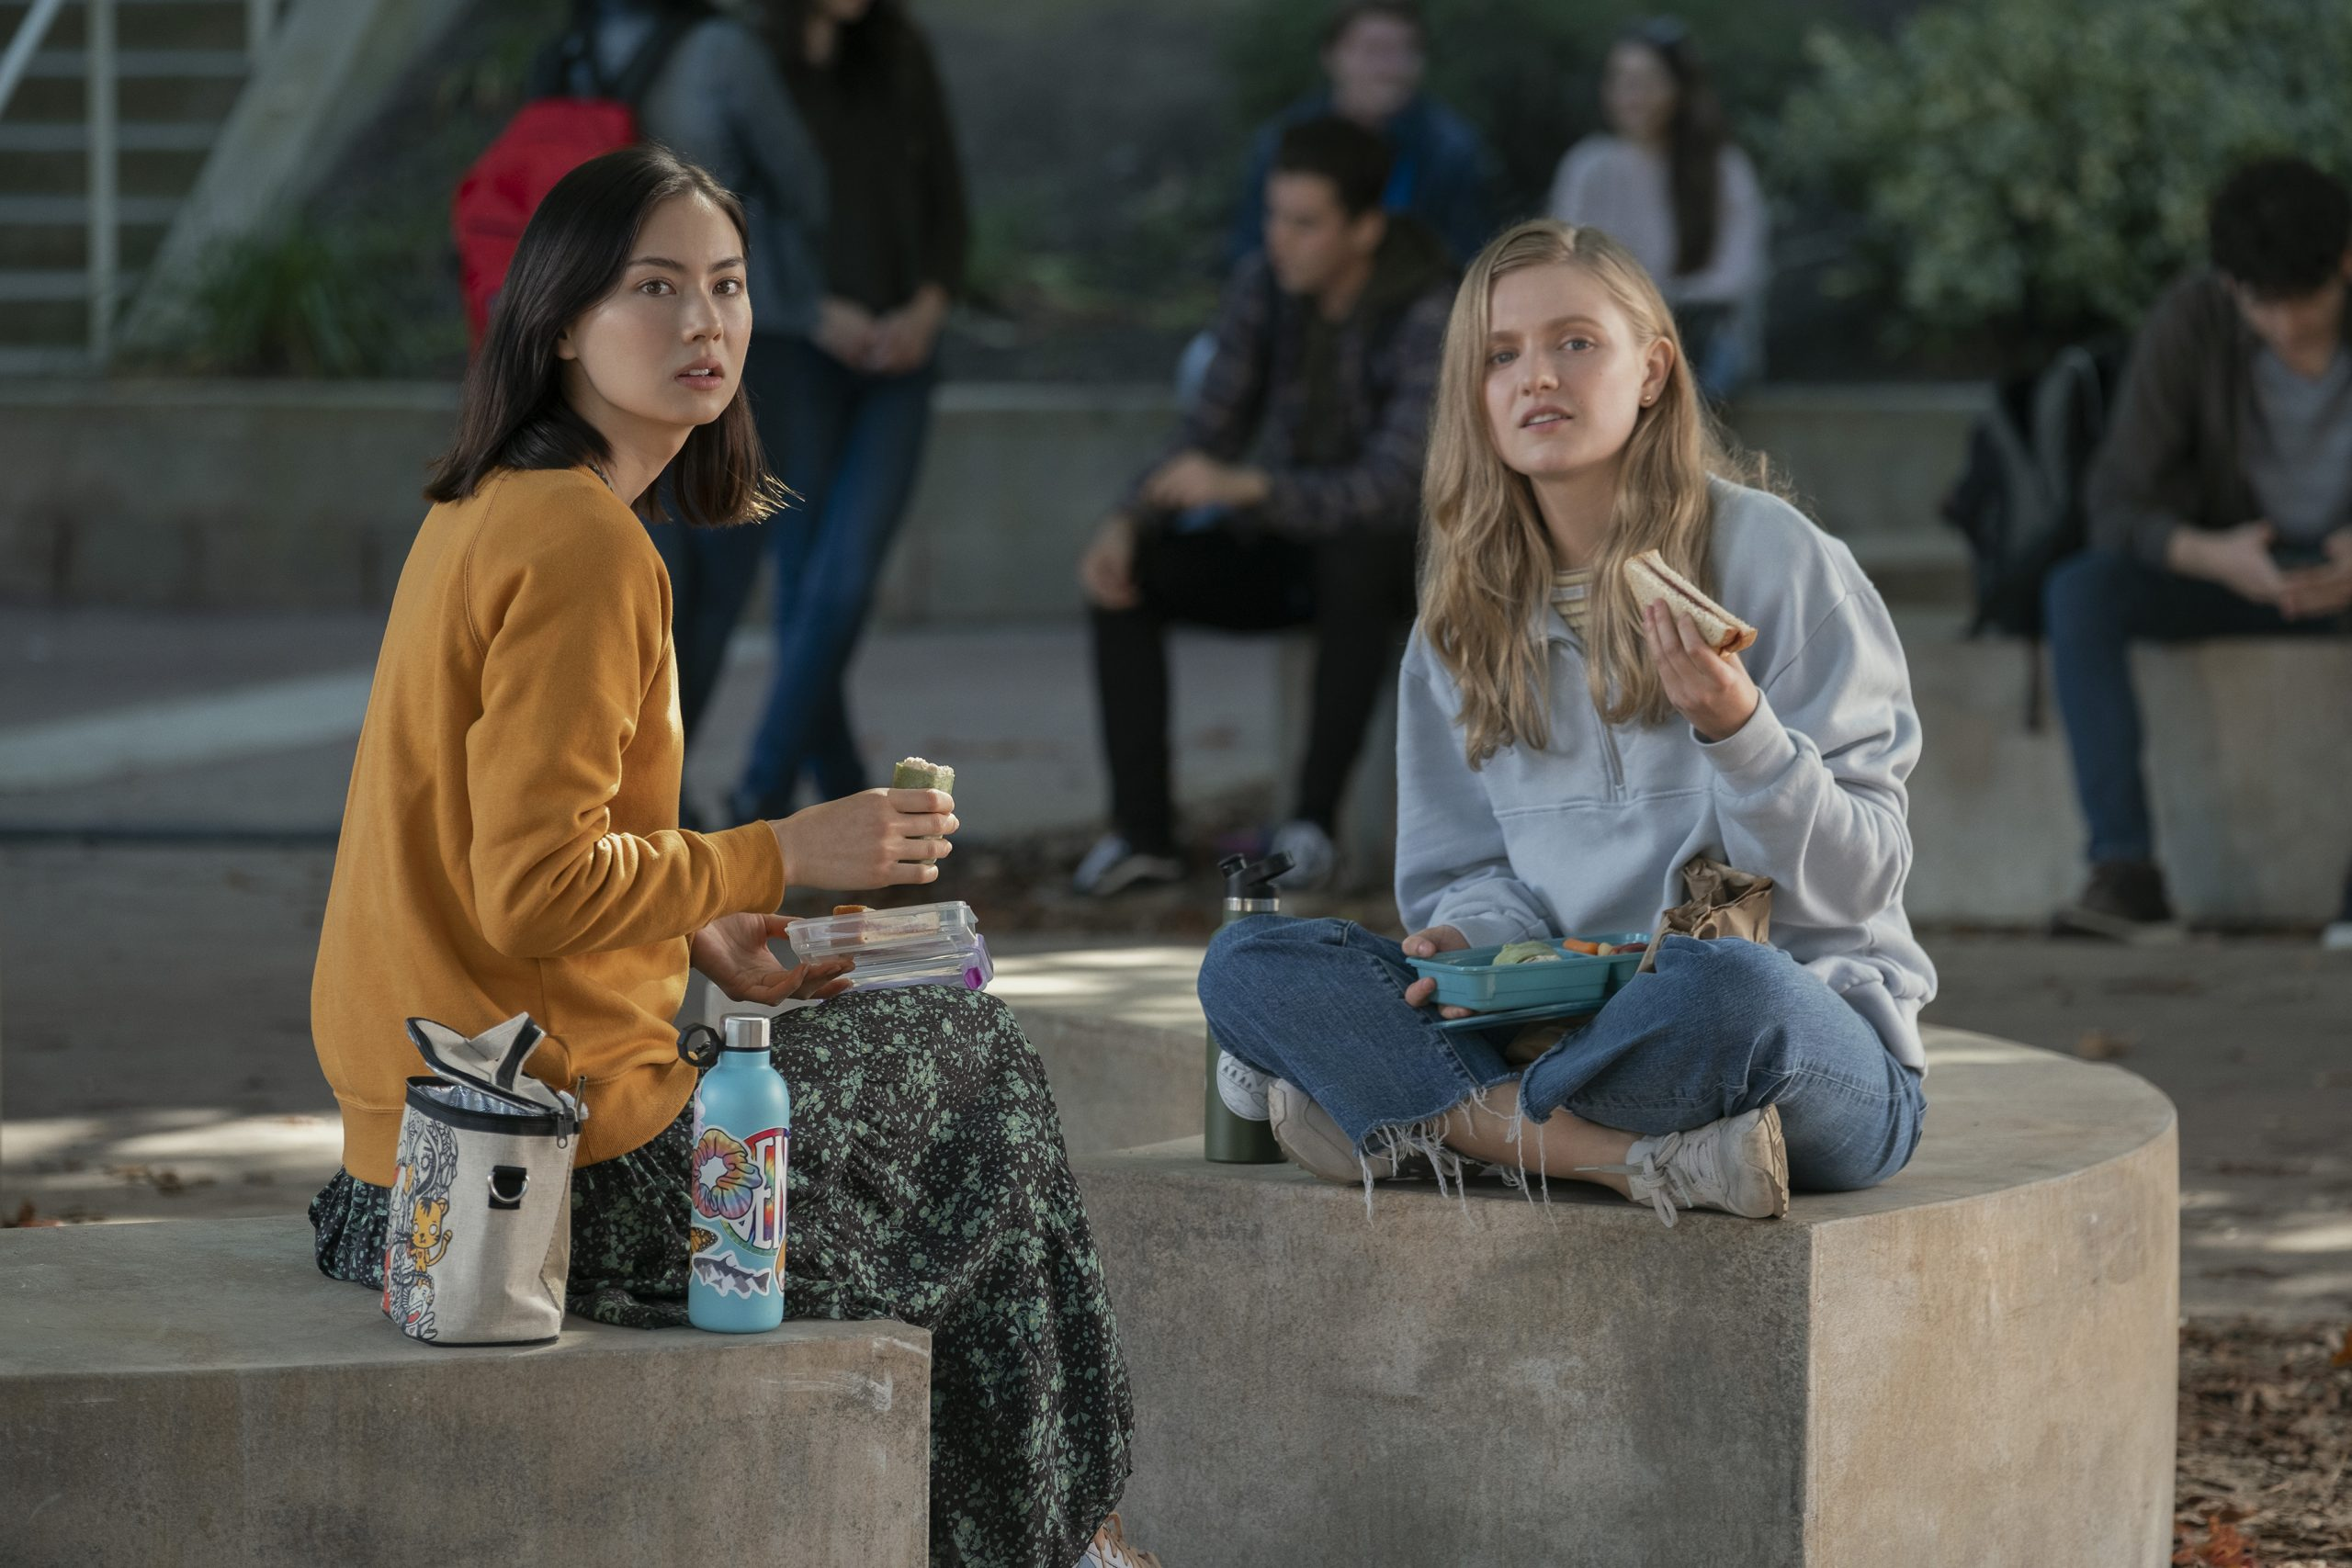 Lauren Tsai as Claudia, Hadley Robinson as Vivian in Moxie